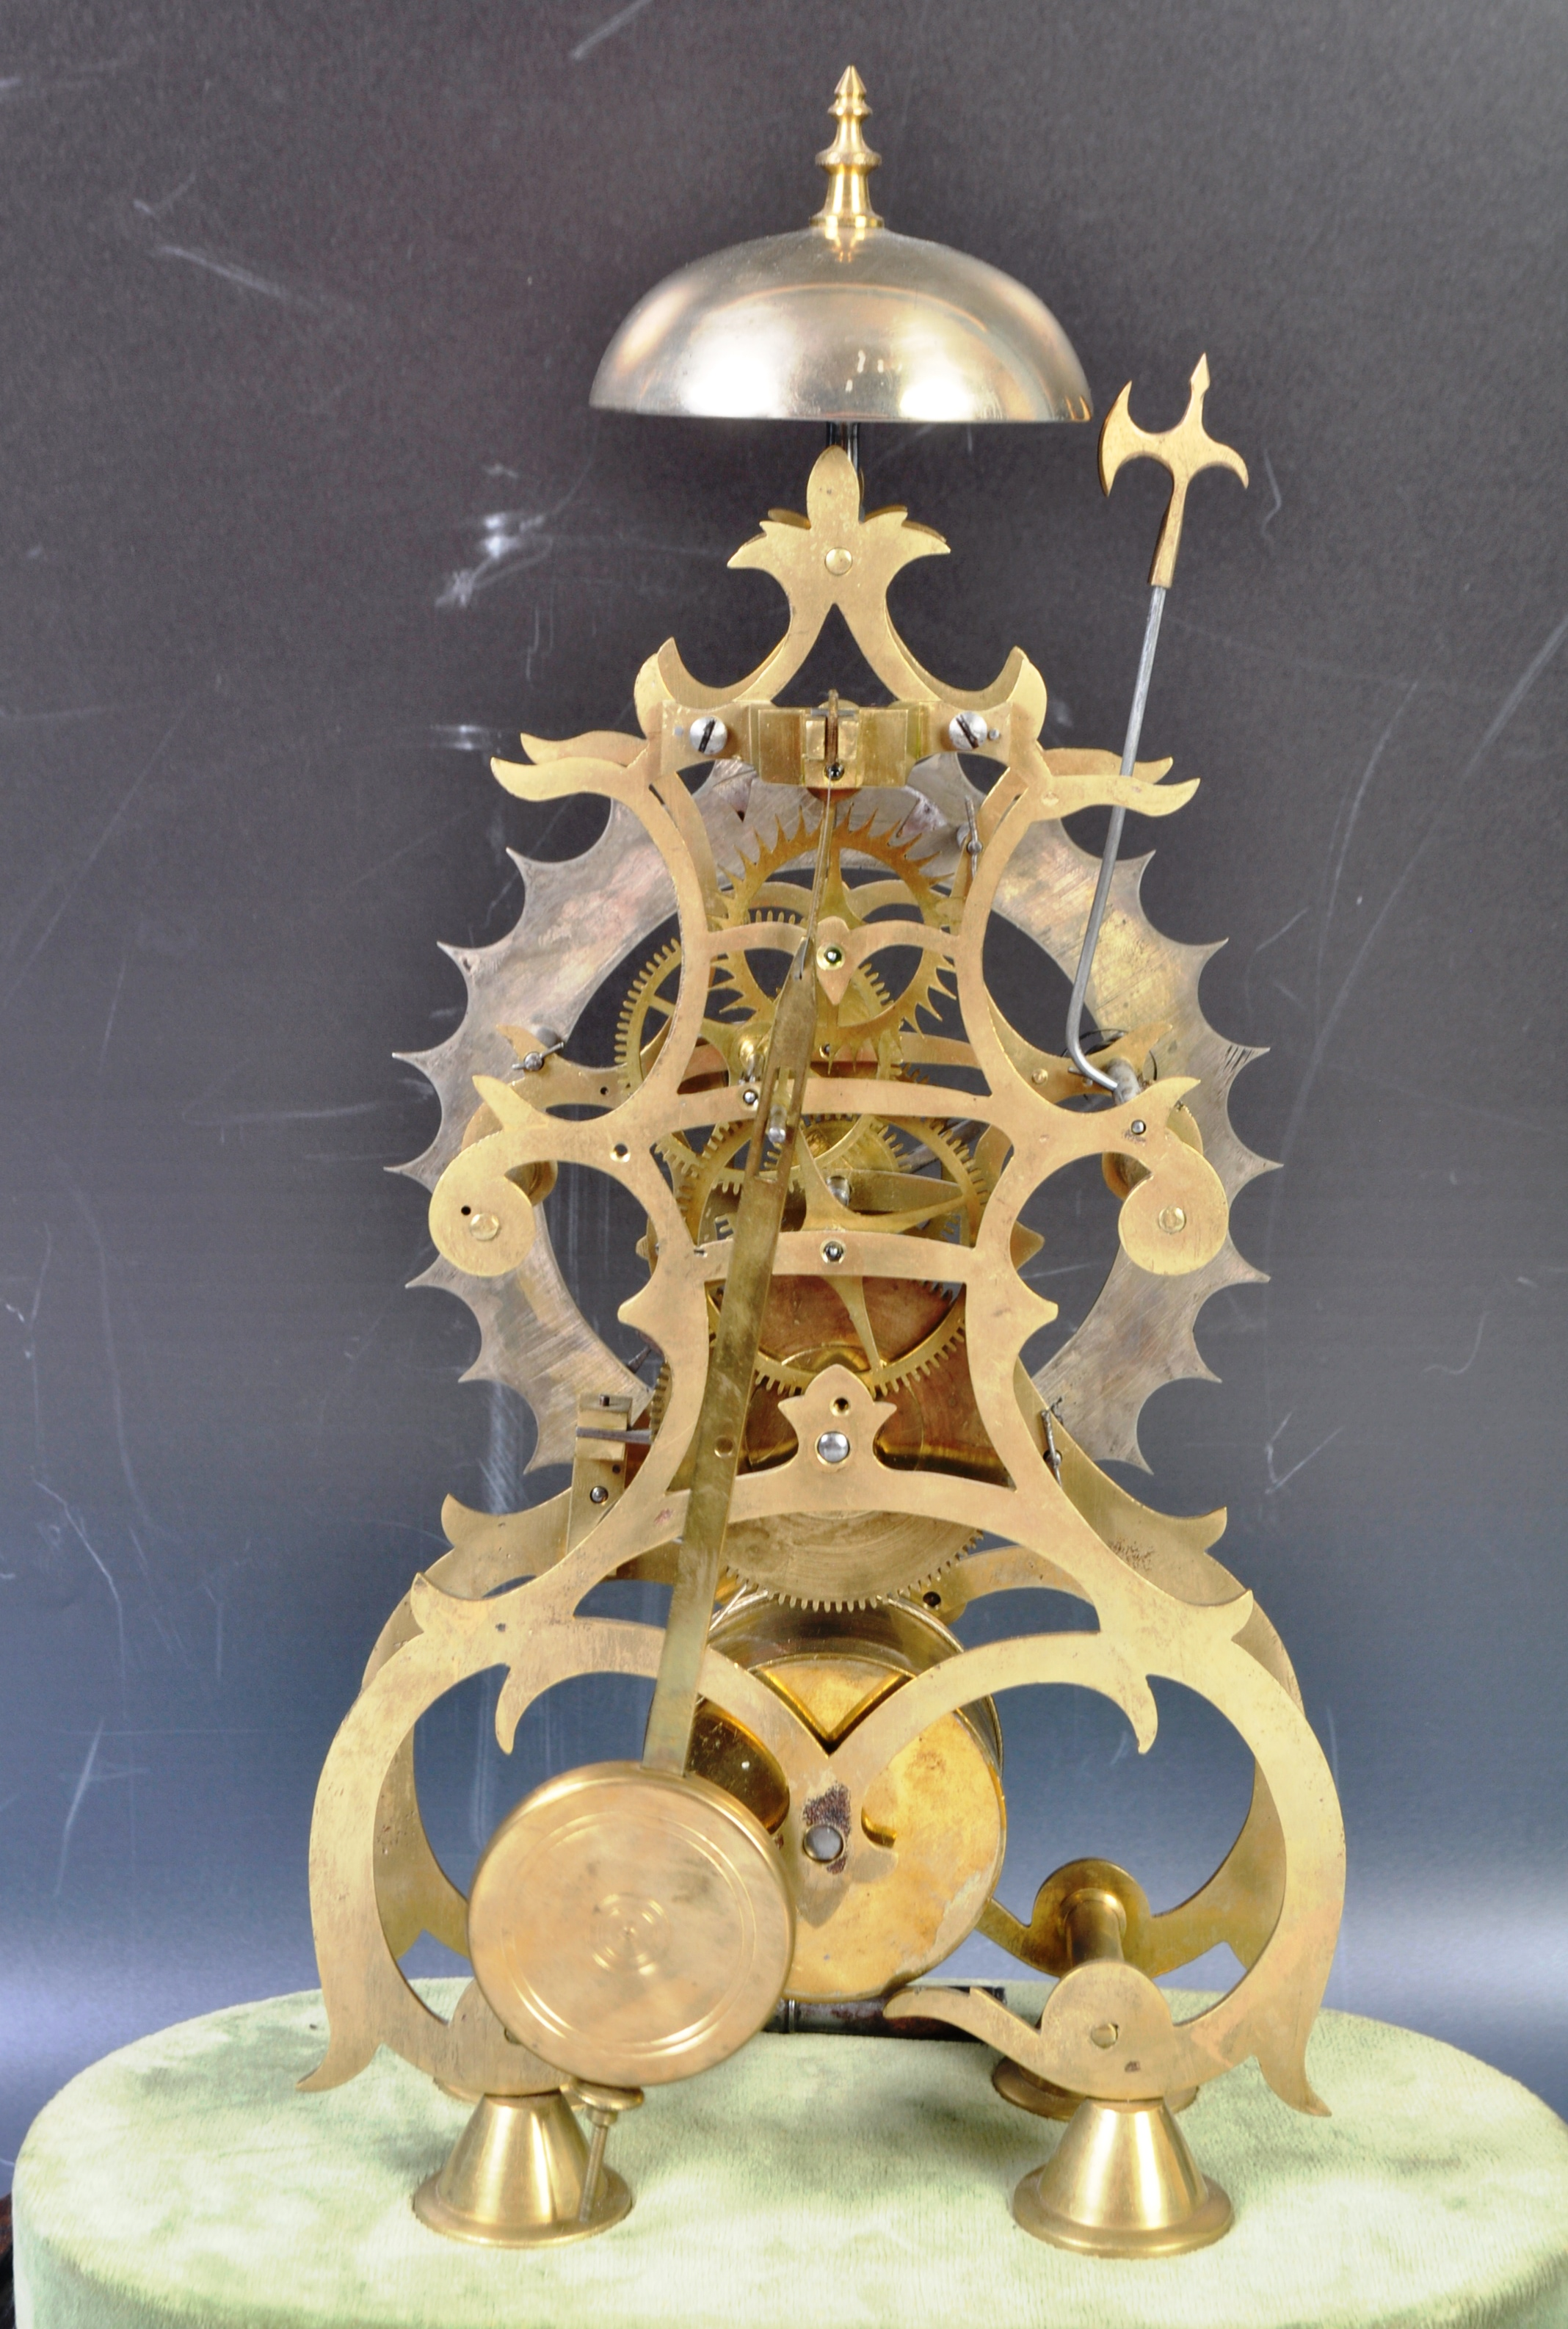 ANTIQUE MID 19TH CENTURY GOTHIC BRASS SKELETON CLOCK IN GLASS DOME - Image 11 of 13